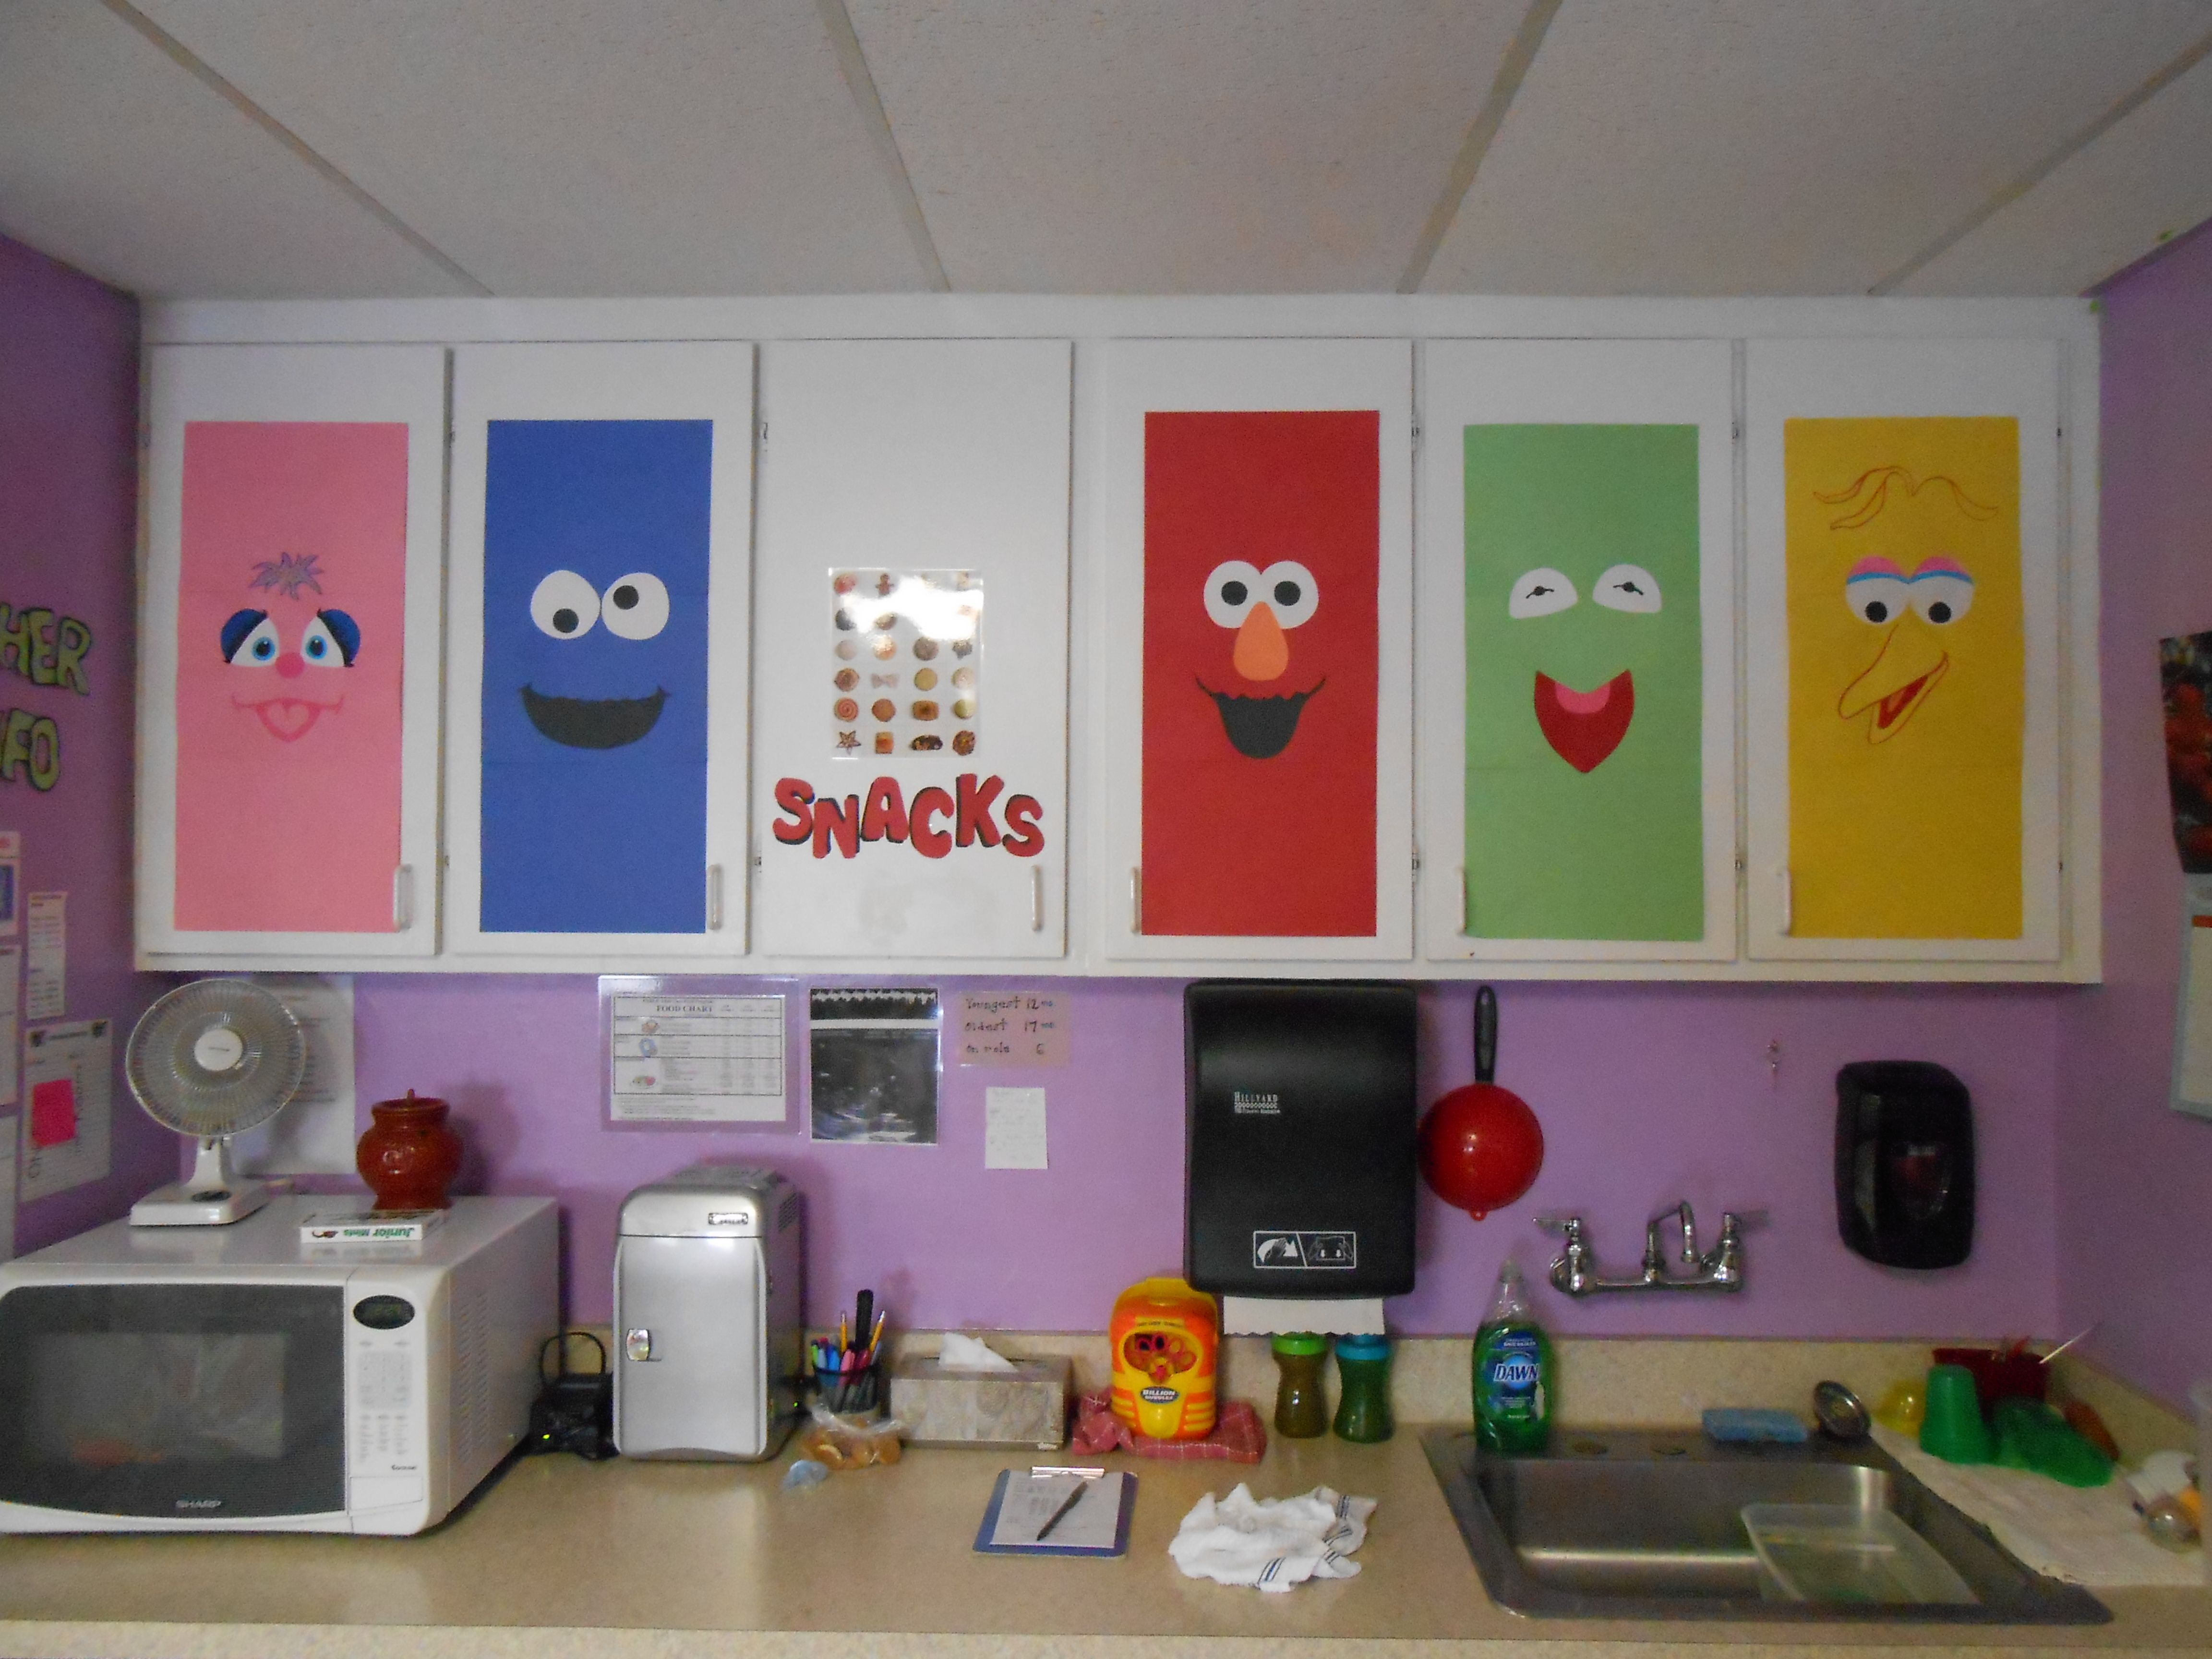 Best 25 Daycare decorations ideas on Pinterest  Daycare